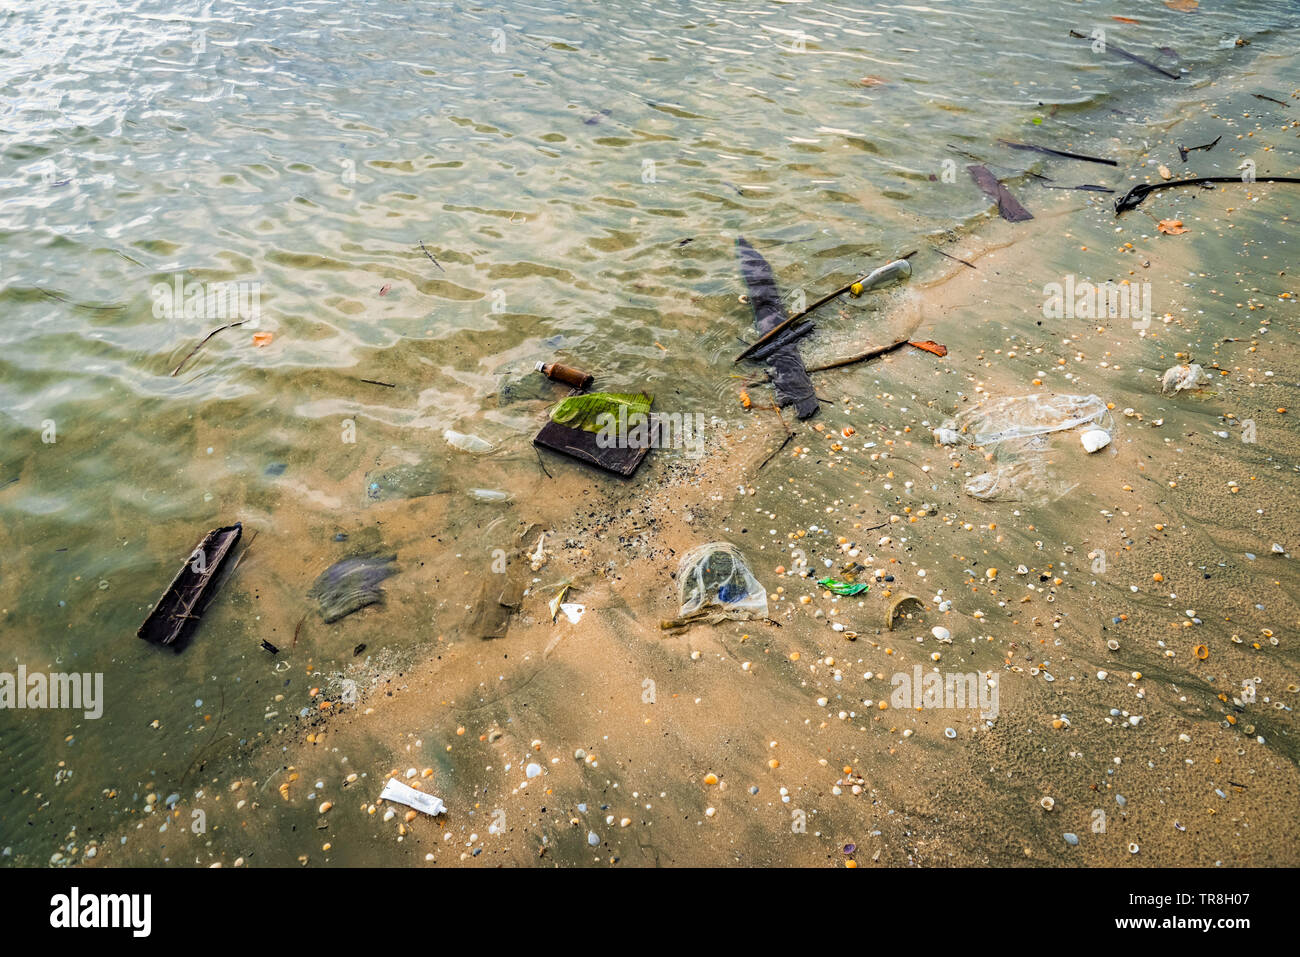 garbage on beach stop plastic pollution save the earth concept / sea water pollution with trash on sand - Stock Image